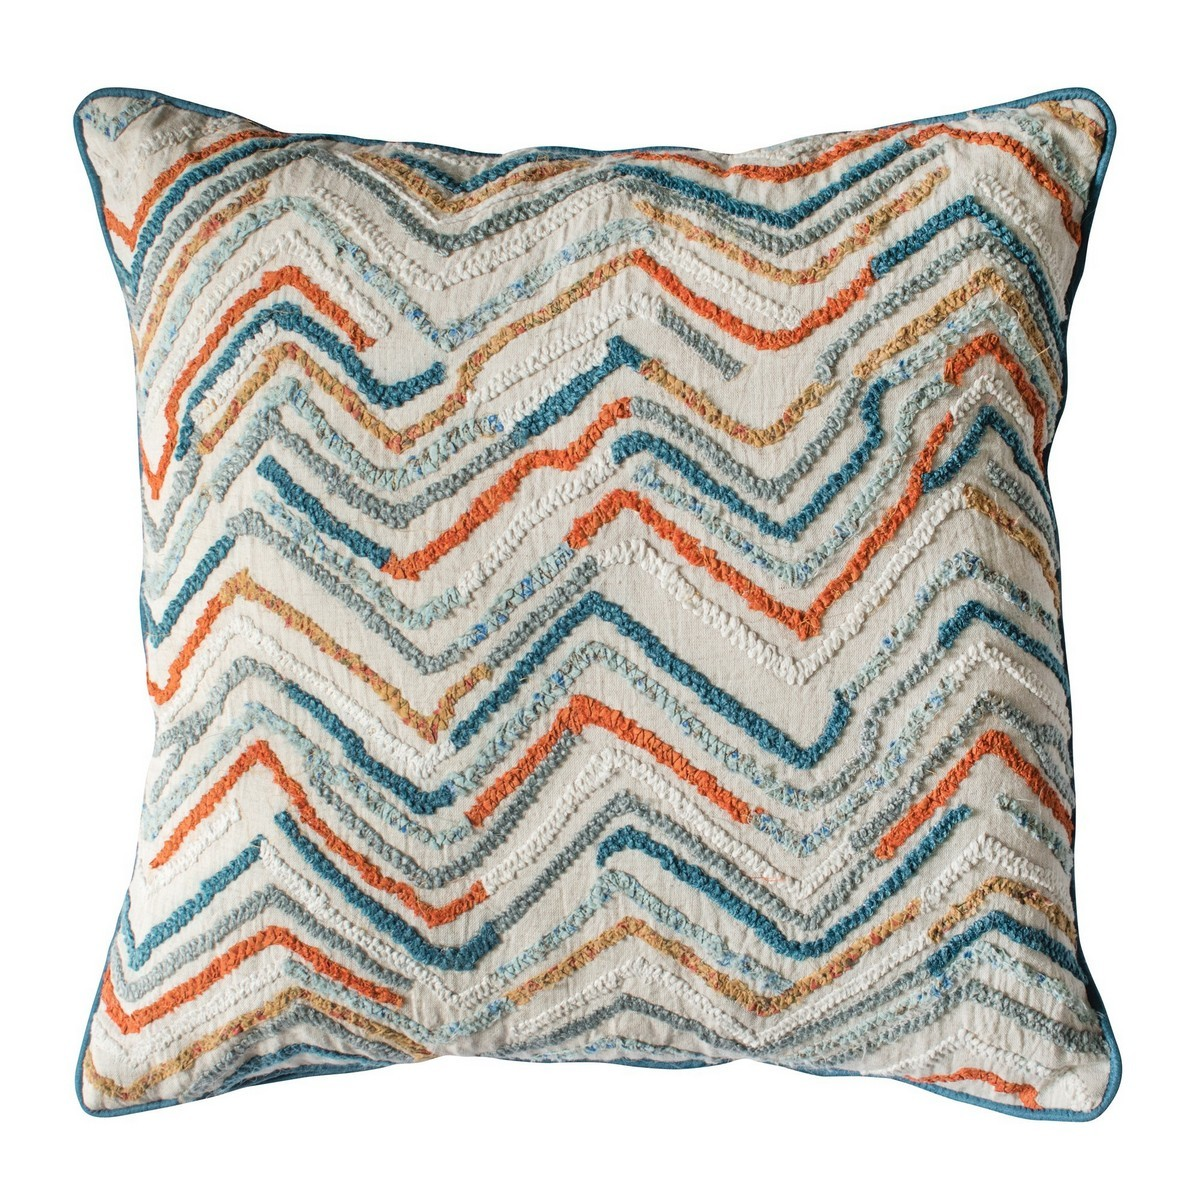 Theo Feather Filled Scatter Cushion, Teal / Orange